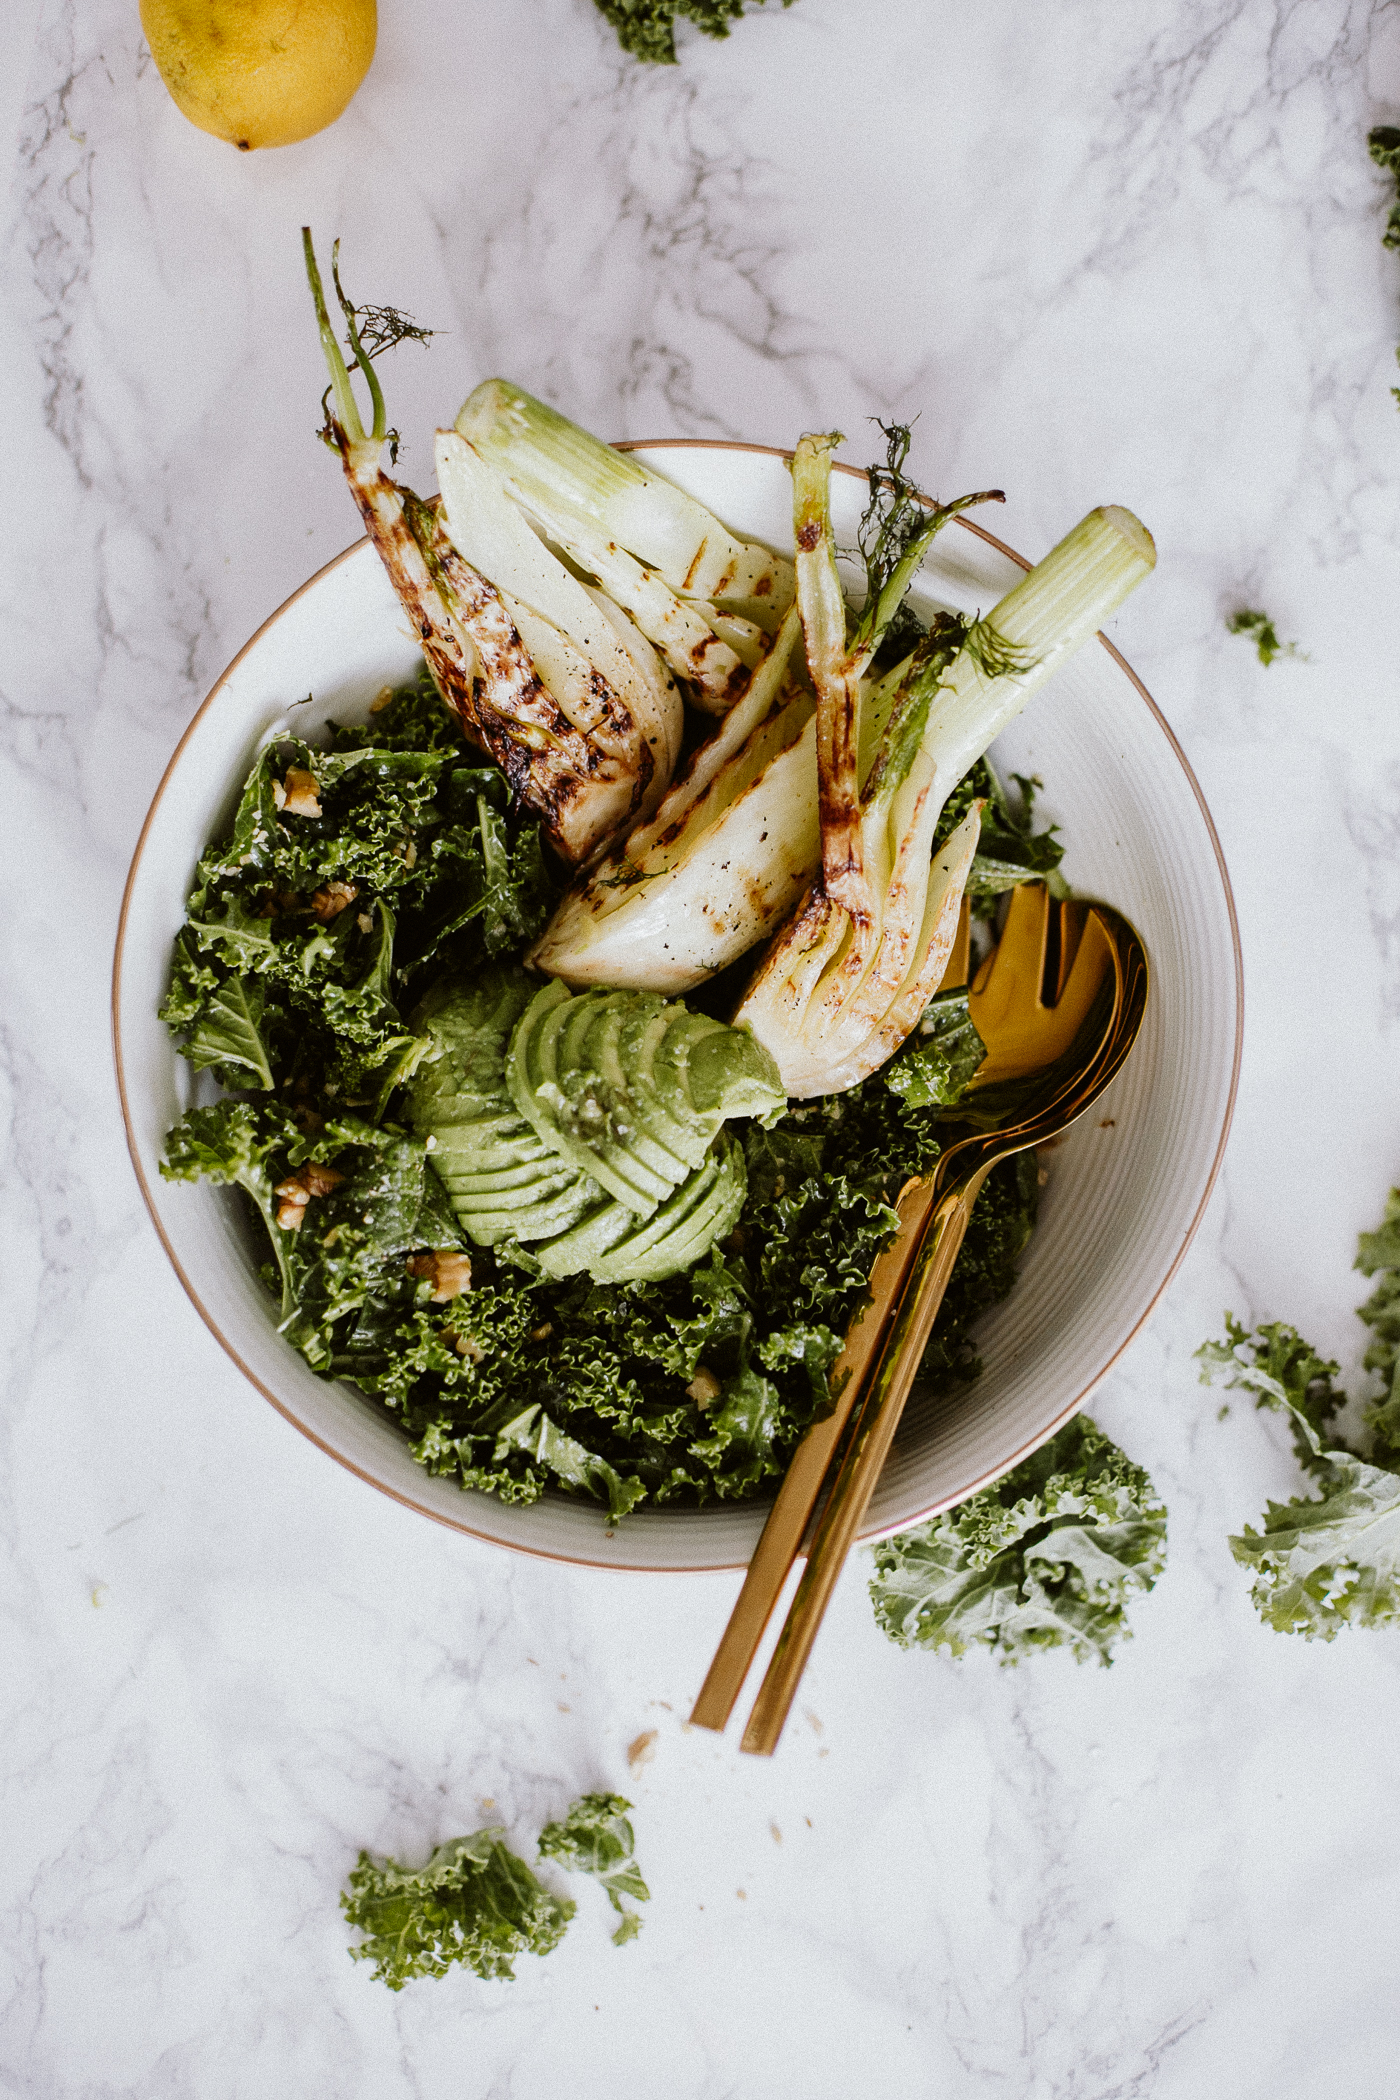 Winter Kale Salad with Grilled Fennel Recipe | Bikinis & Passports